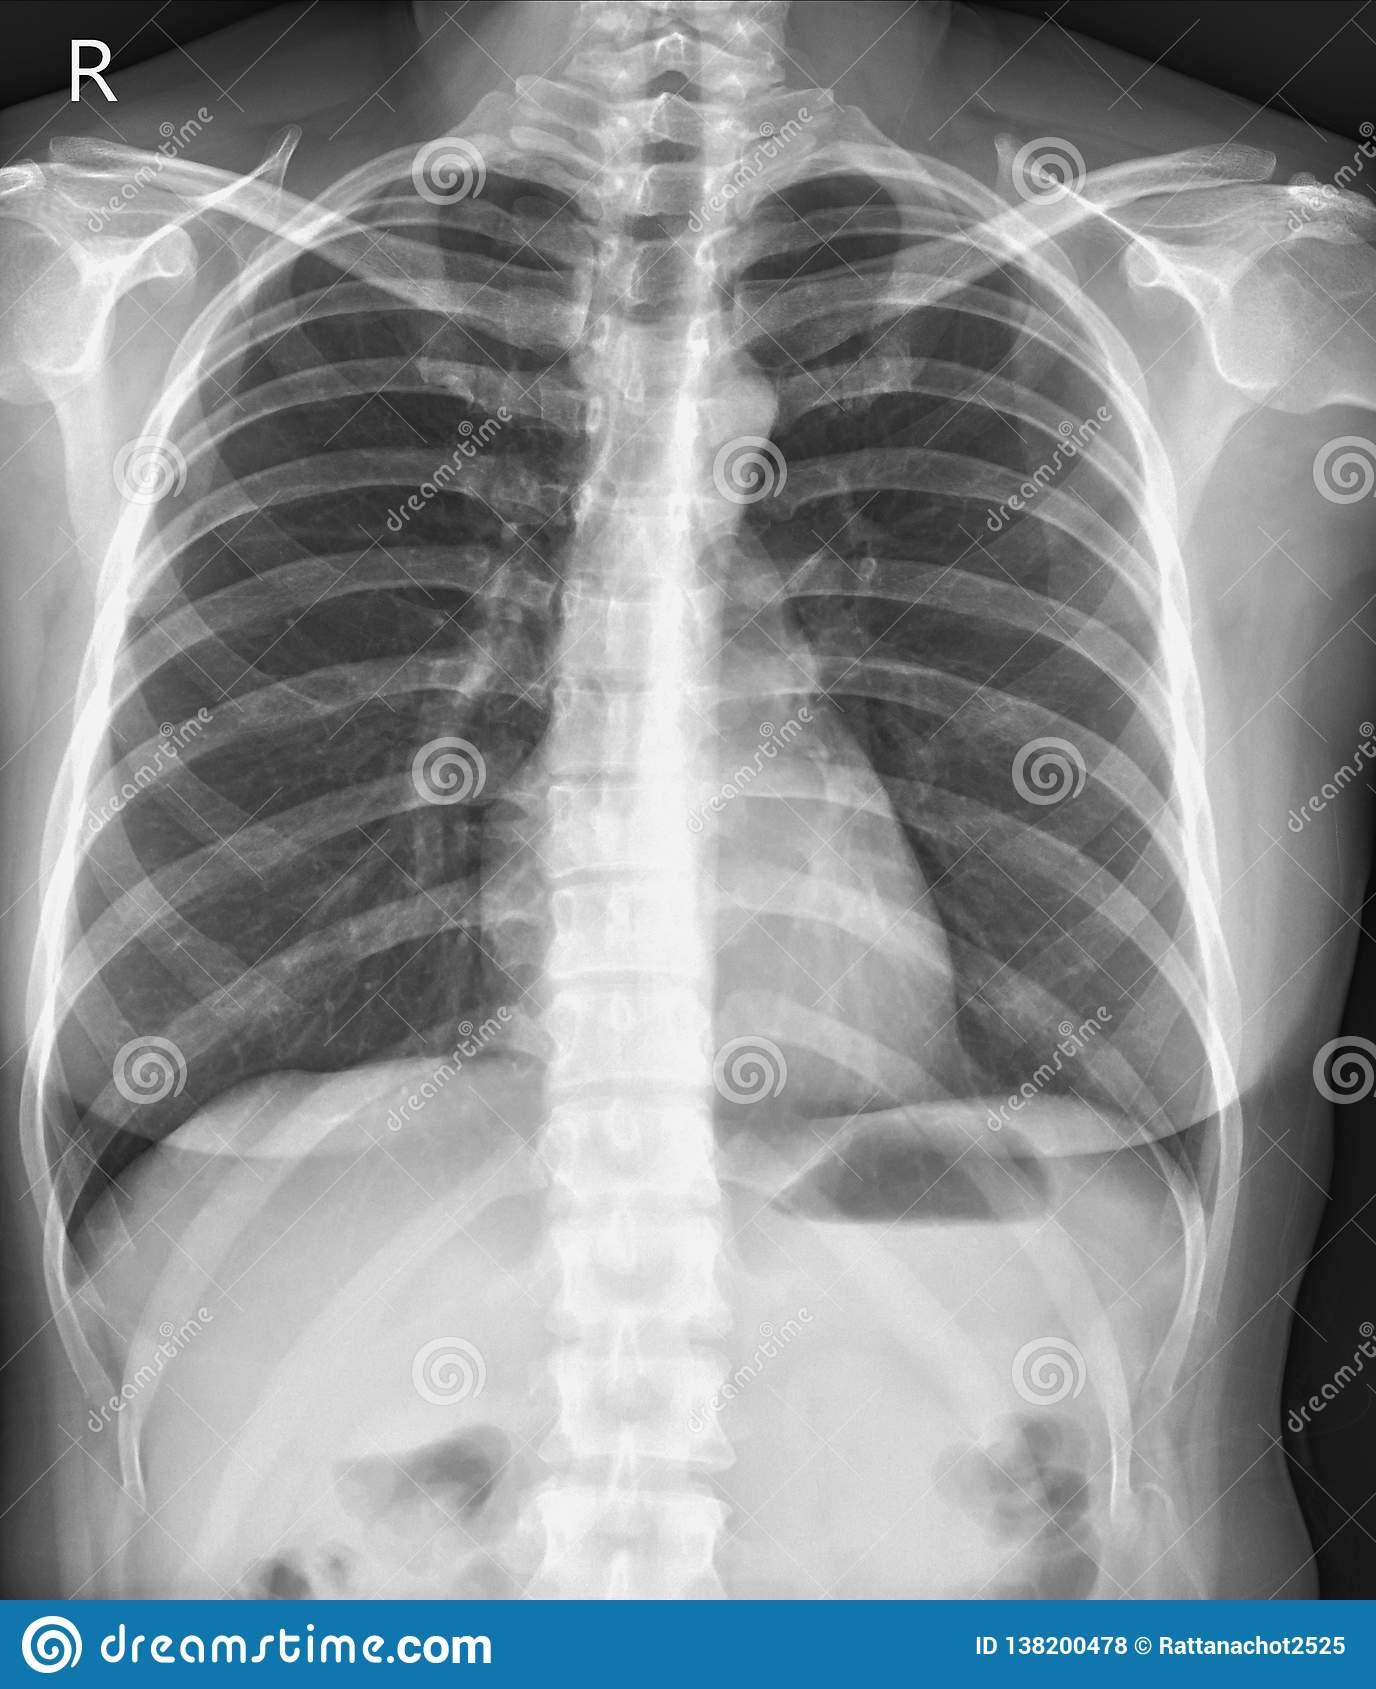 Free Chest Xray Cliparts, Download Free Clip Art, Free Clip Art on Clipart  Library